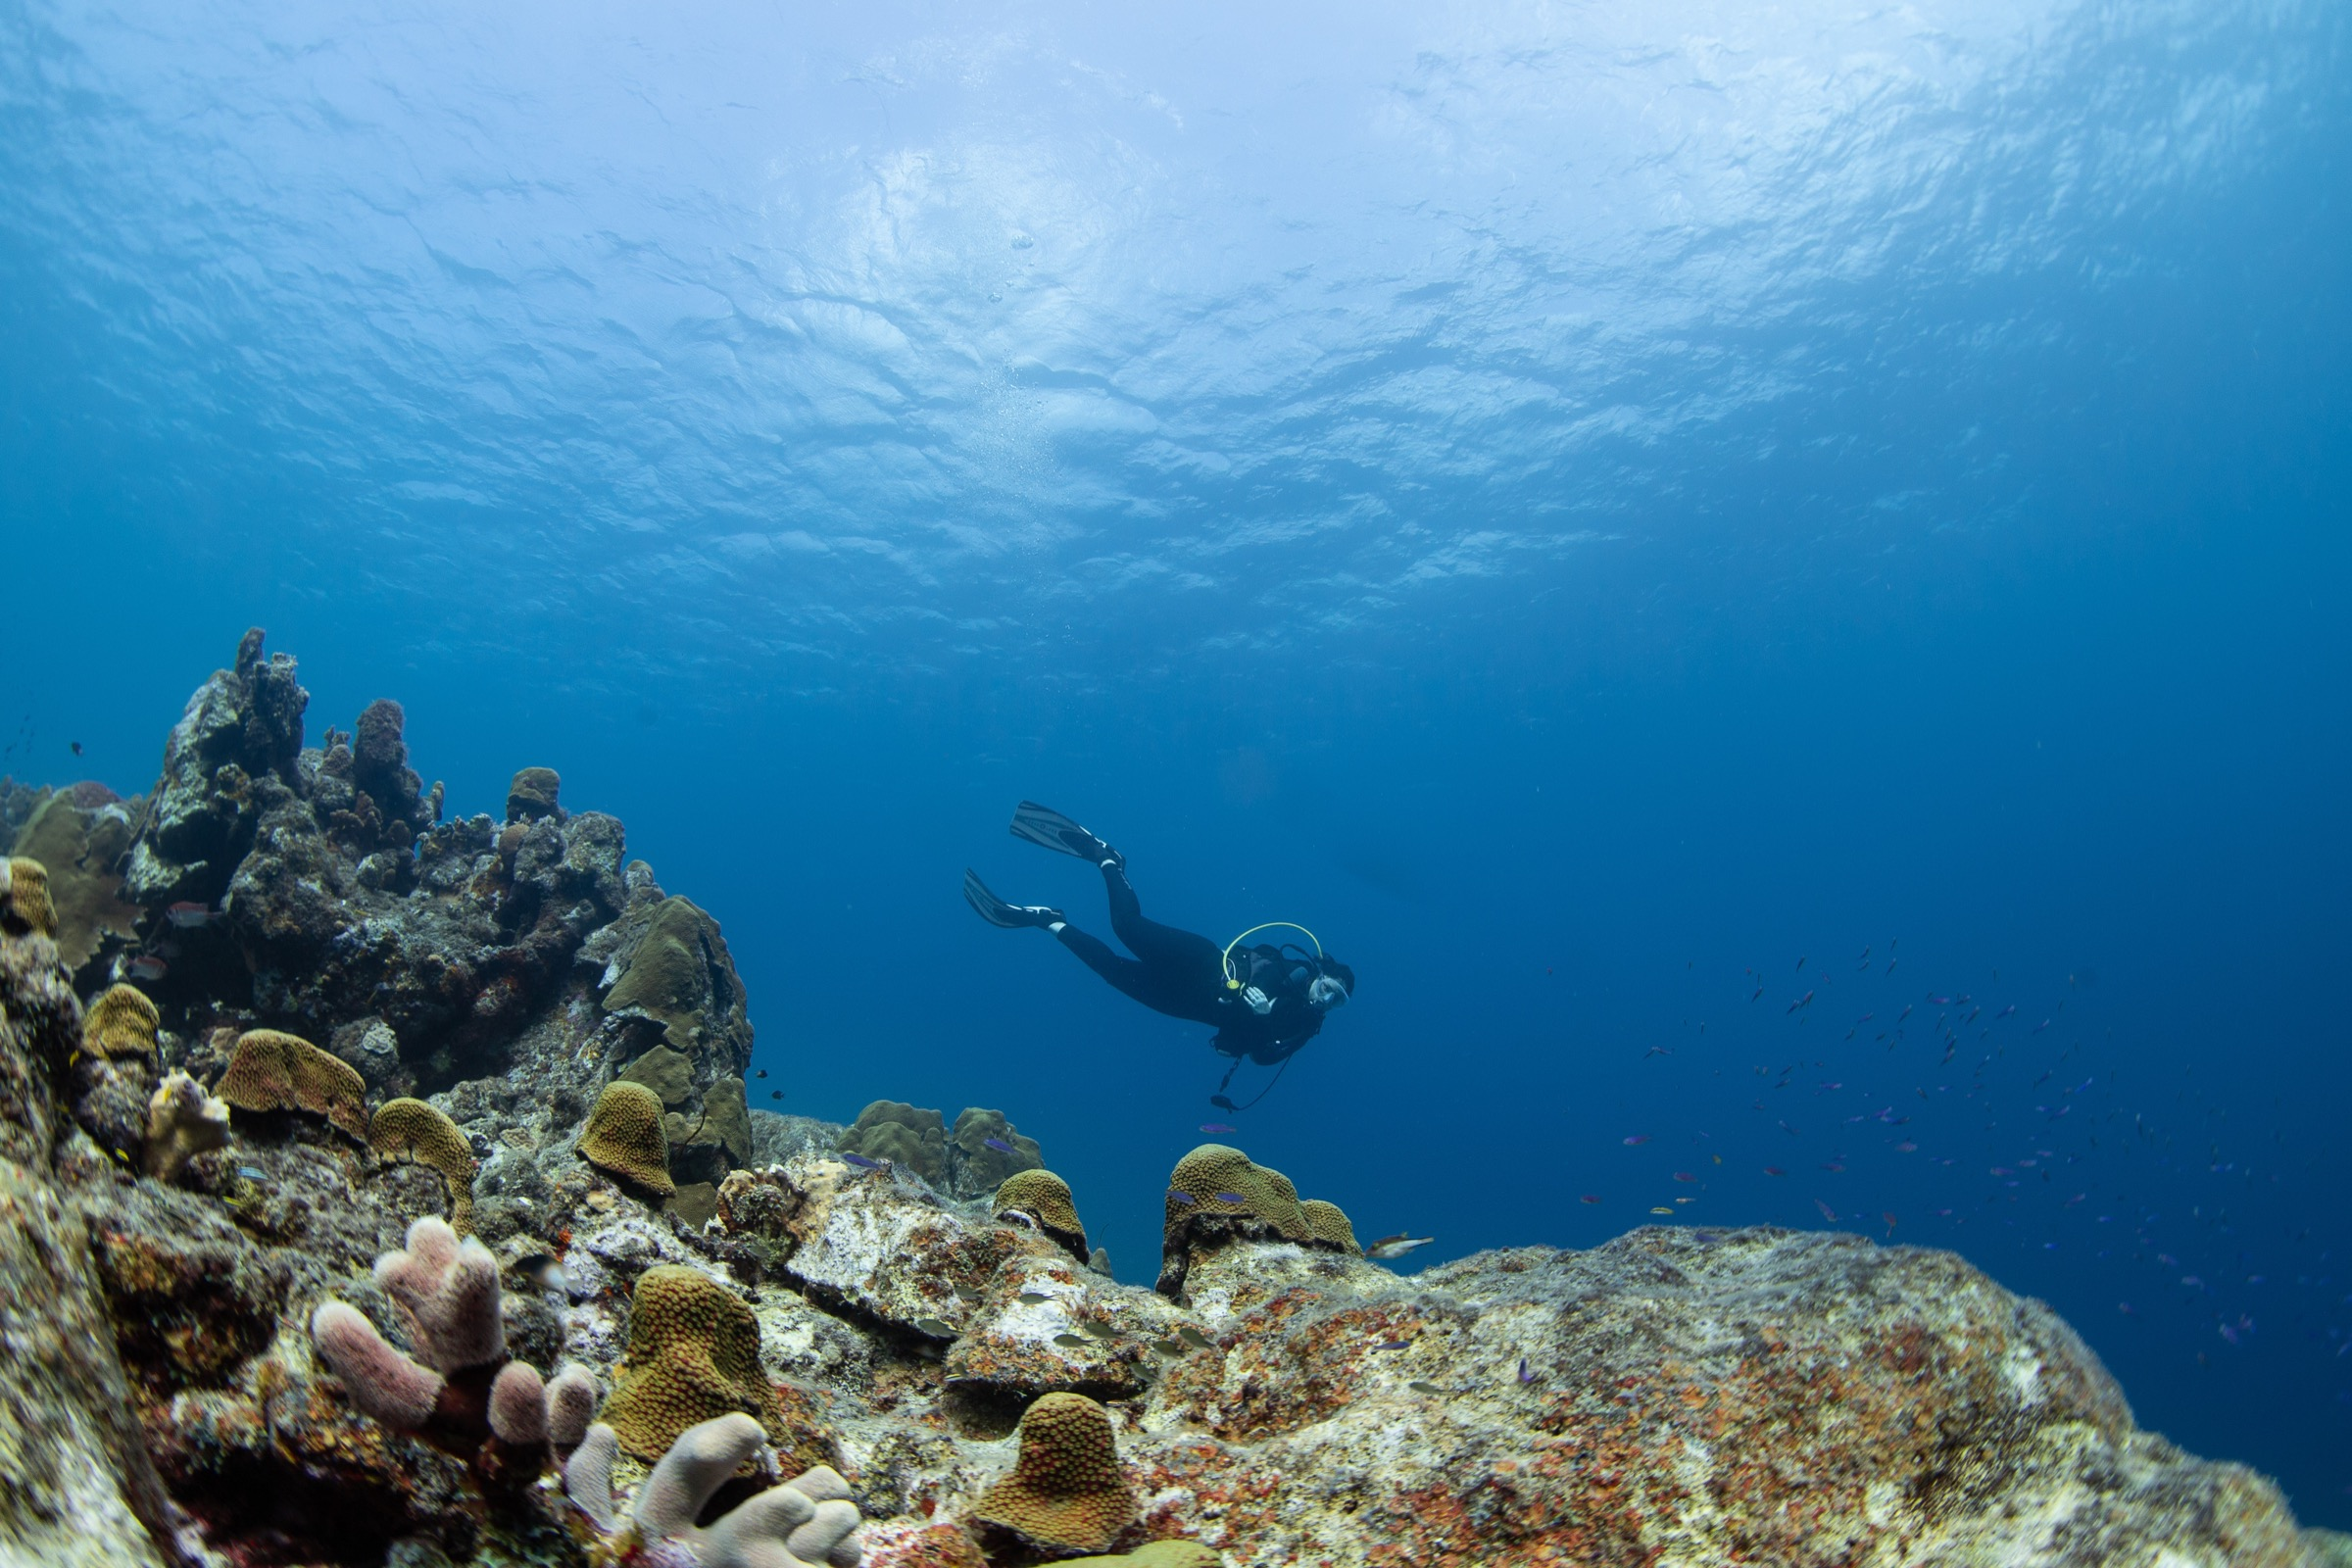 Valérie Chamberland descends over a coral reef off the coast of Curaçao.